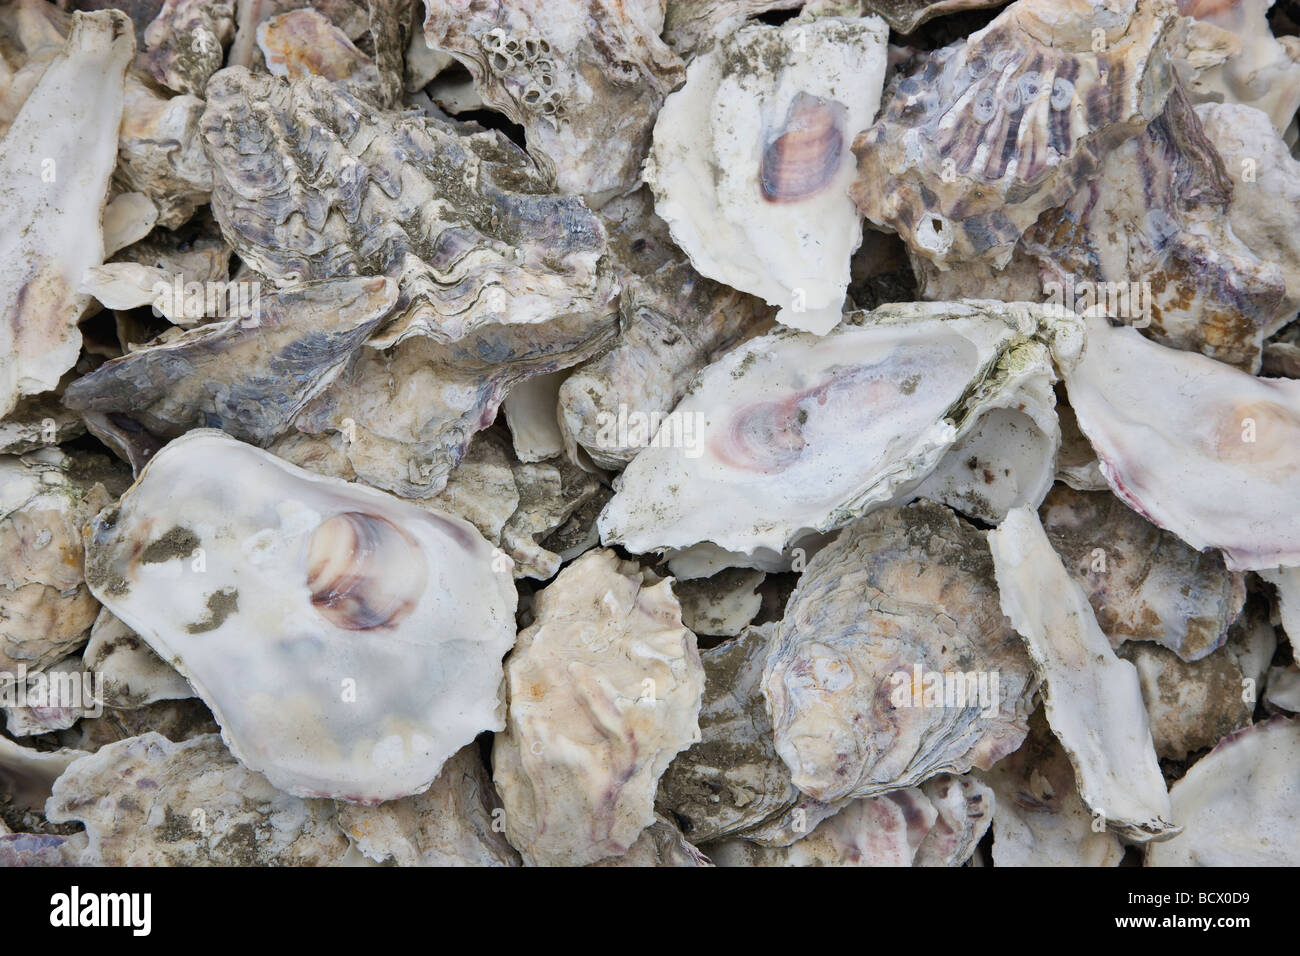 Oyster Shells piled for reseeding beds. - Stock Image